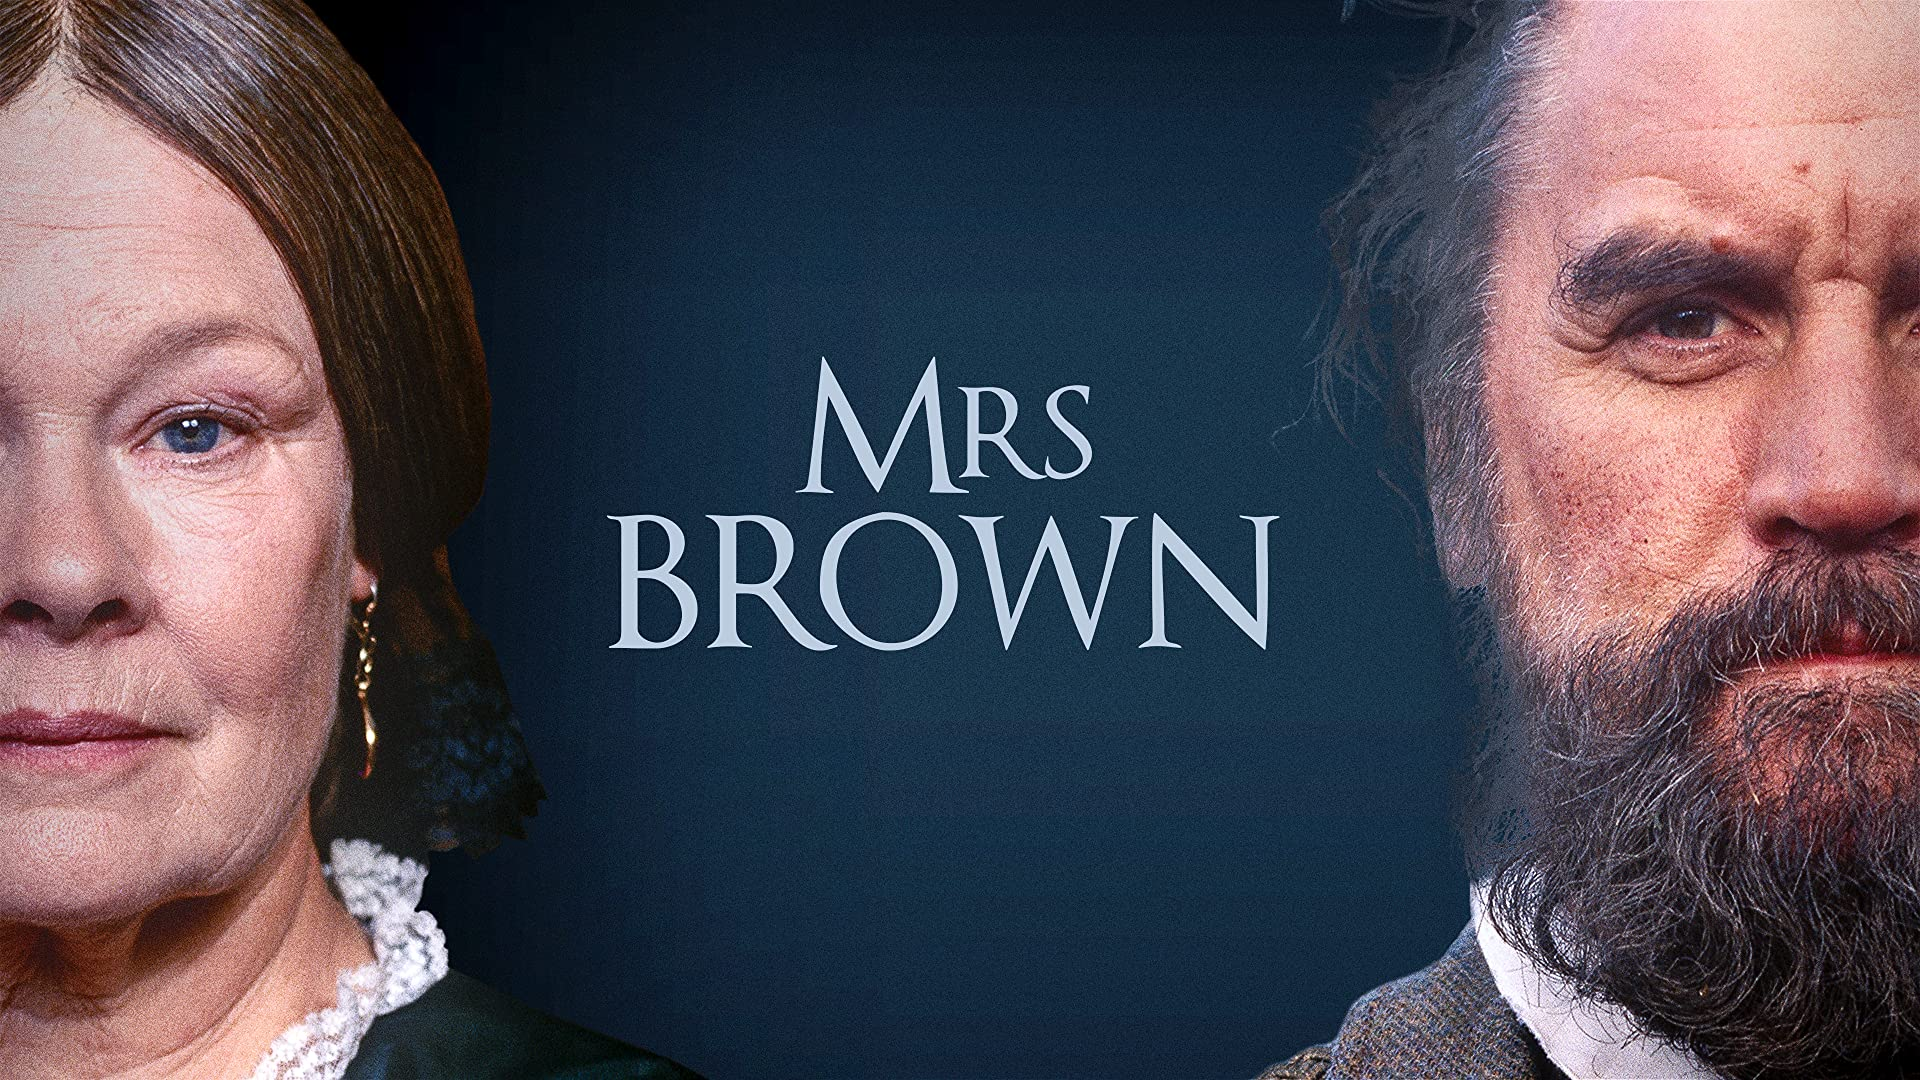 Her Majesty, Mrs. Brown